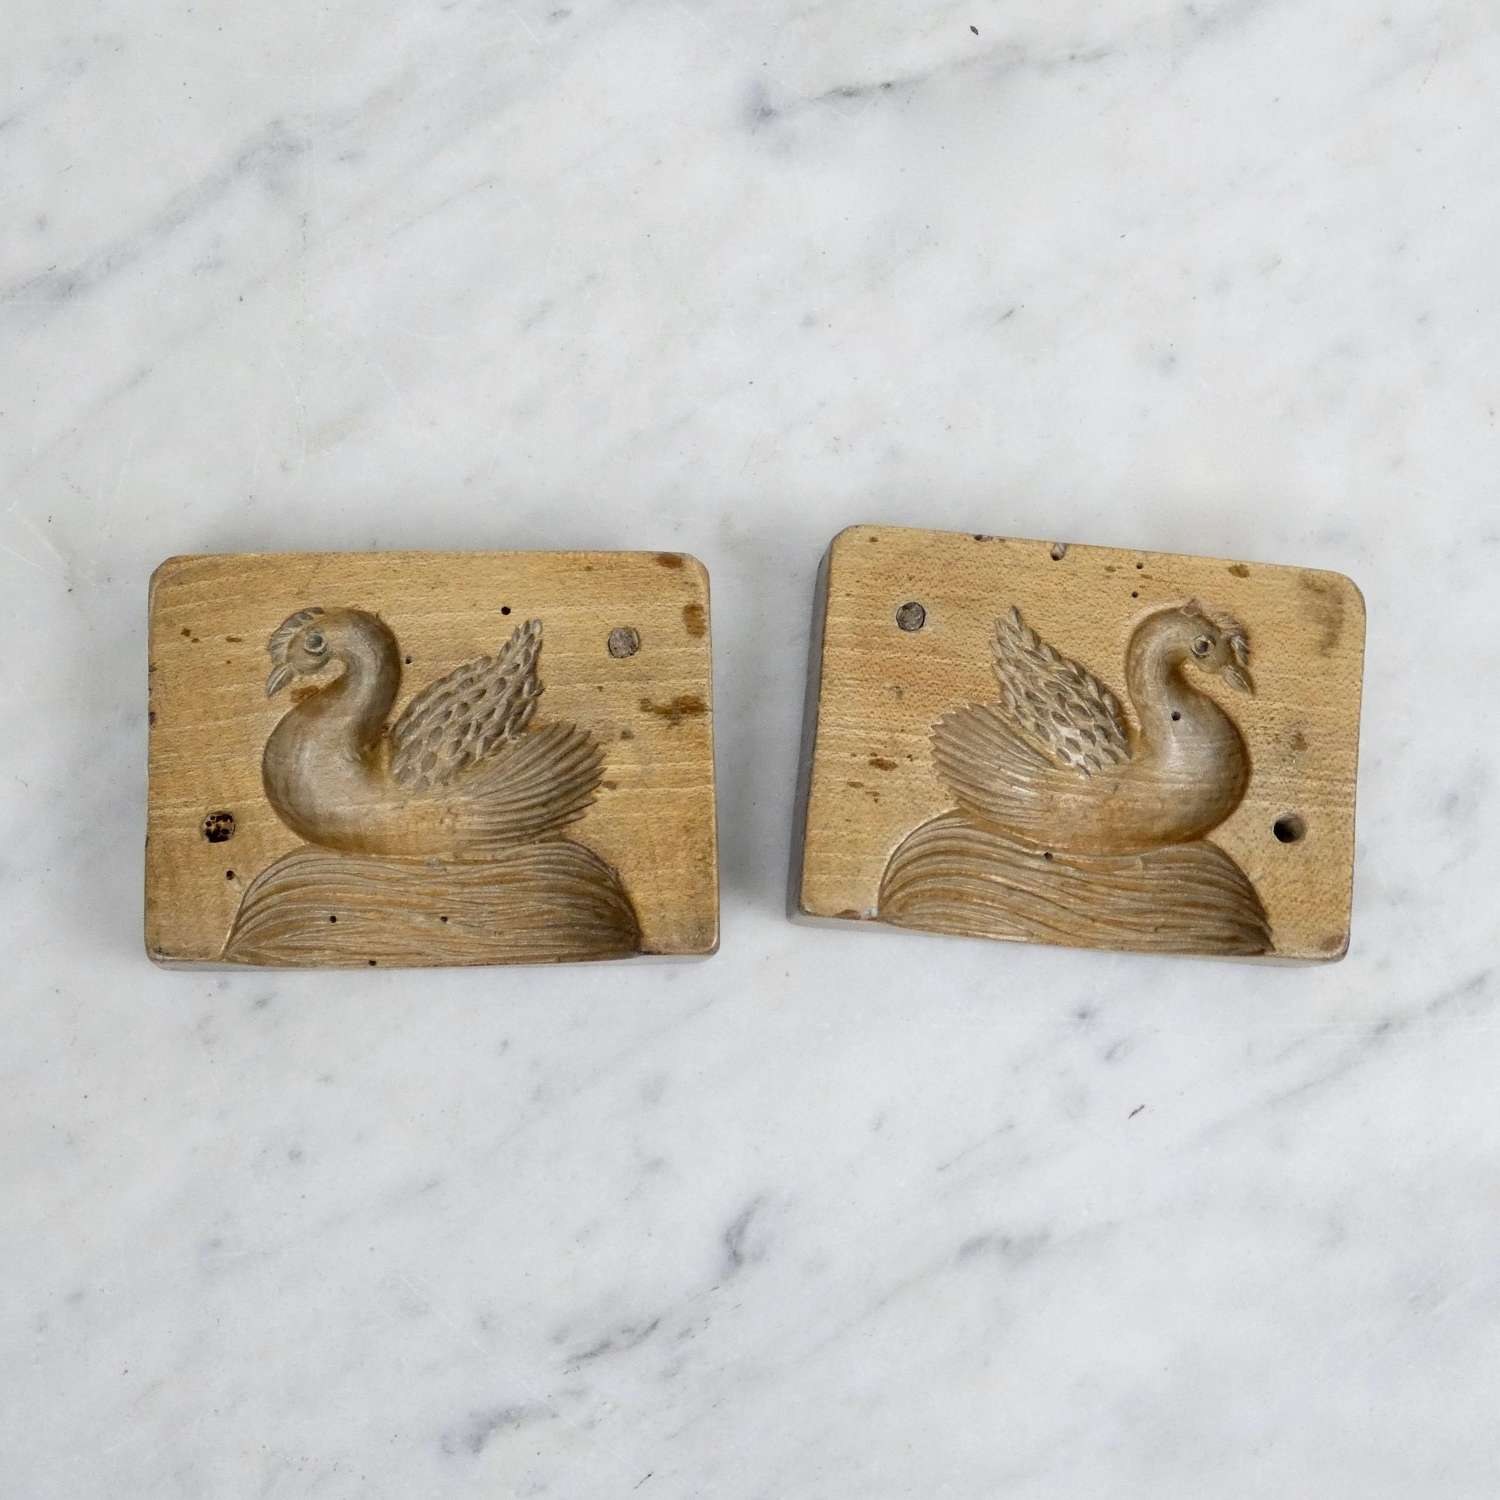 Sycamore butter mould carved with a duck